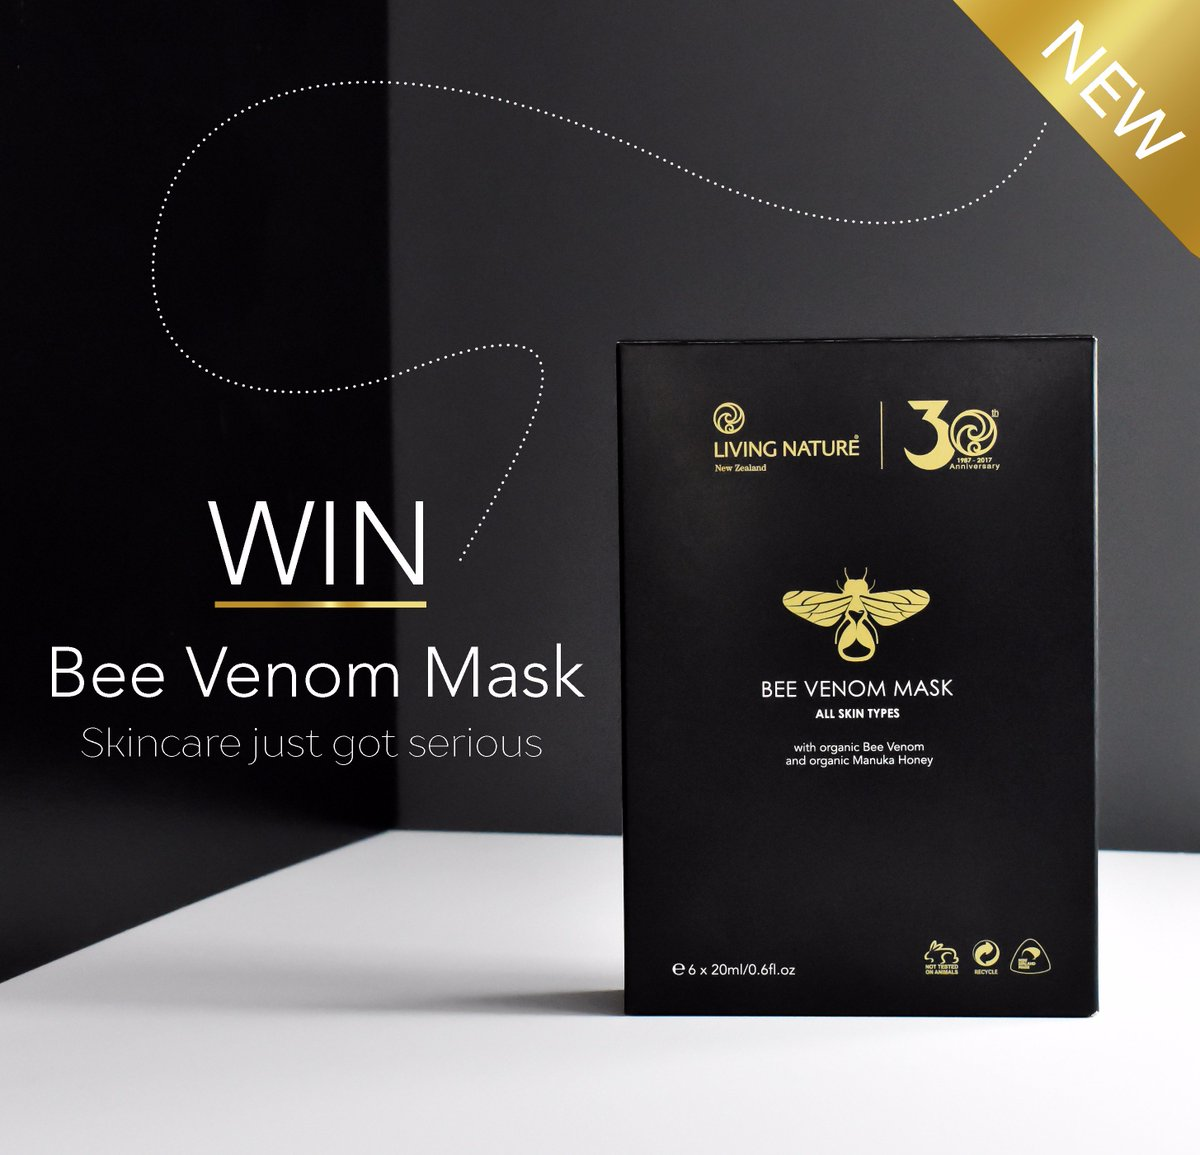 Mặt nạ Living Nature Bee Venom Mask 3